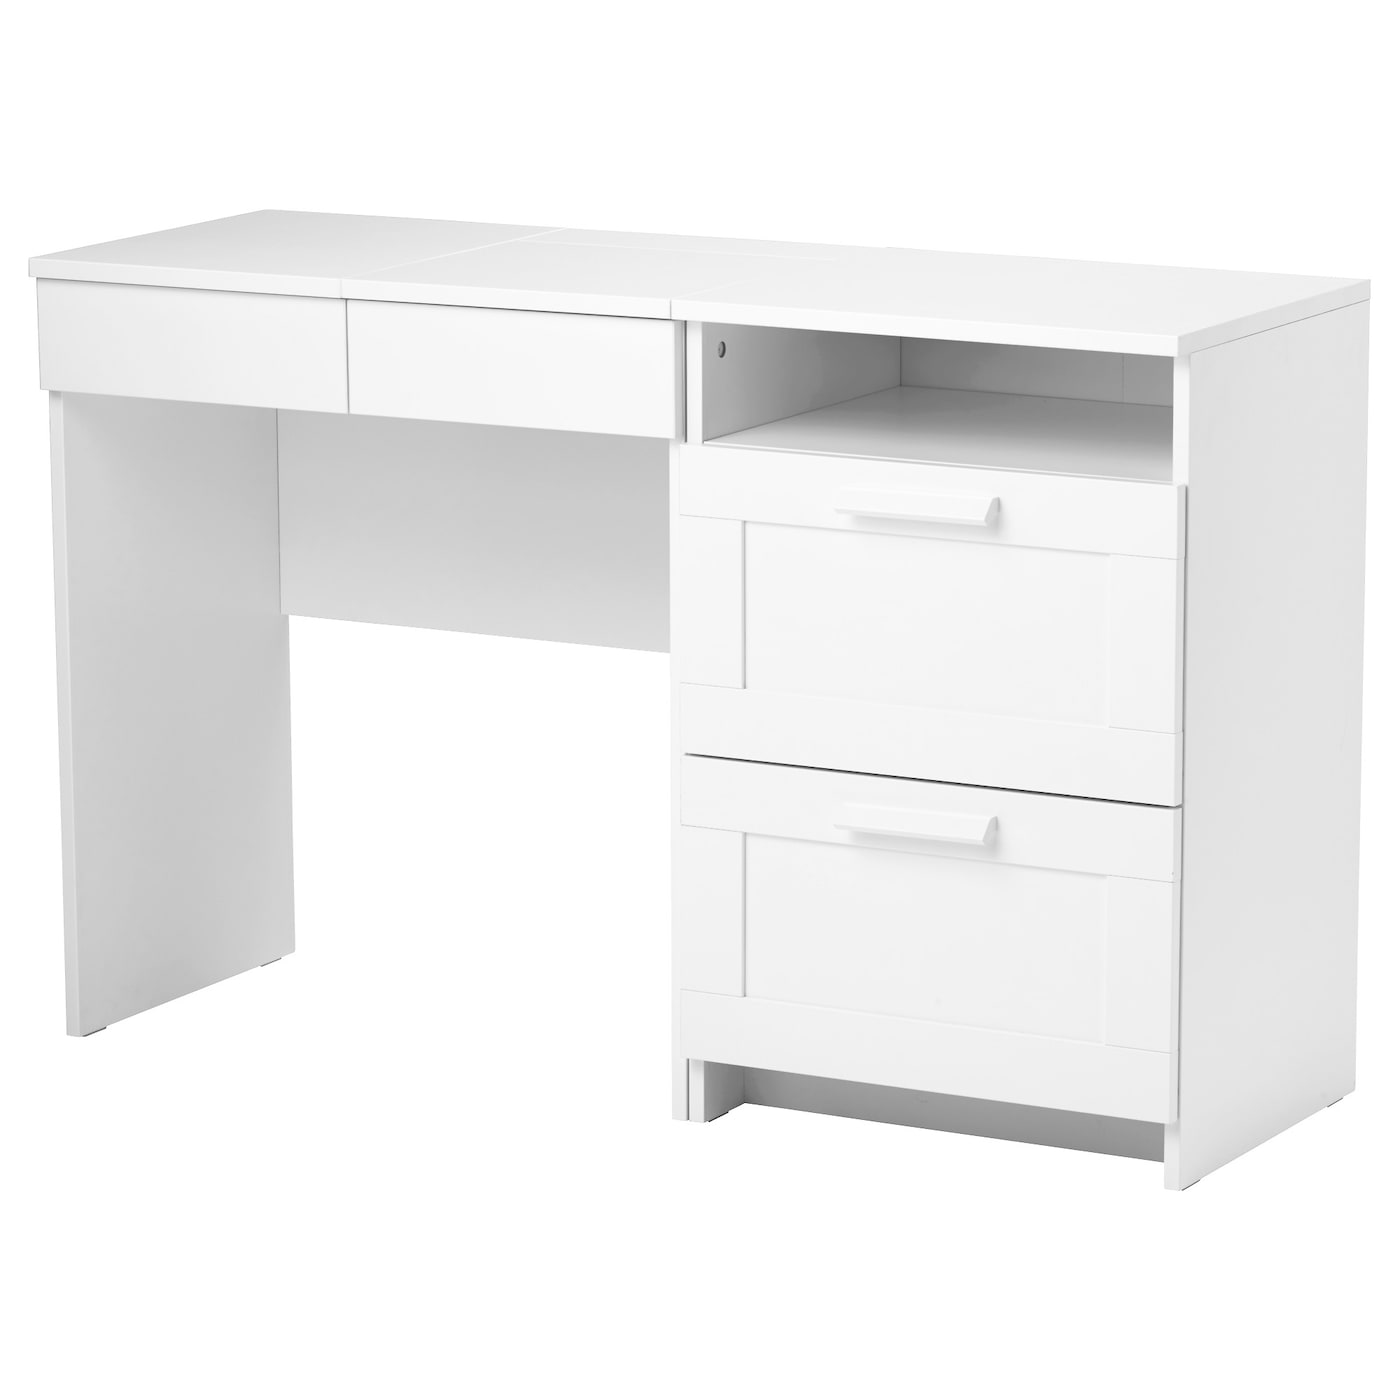 IKEA BRIMNES coiffeuse + commode 2 tiroirs